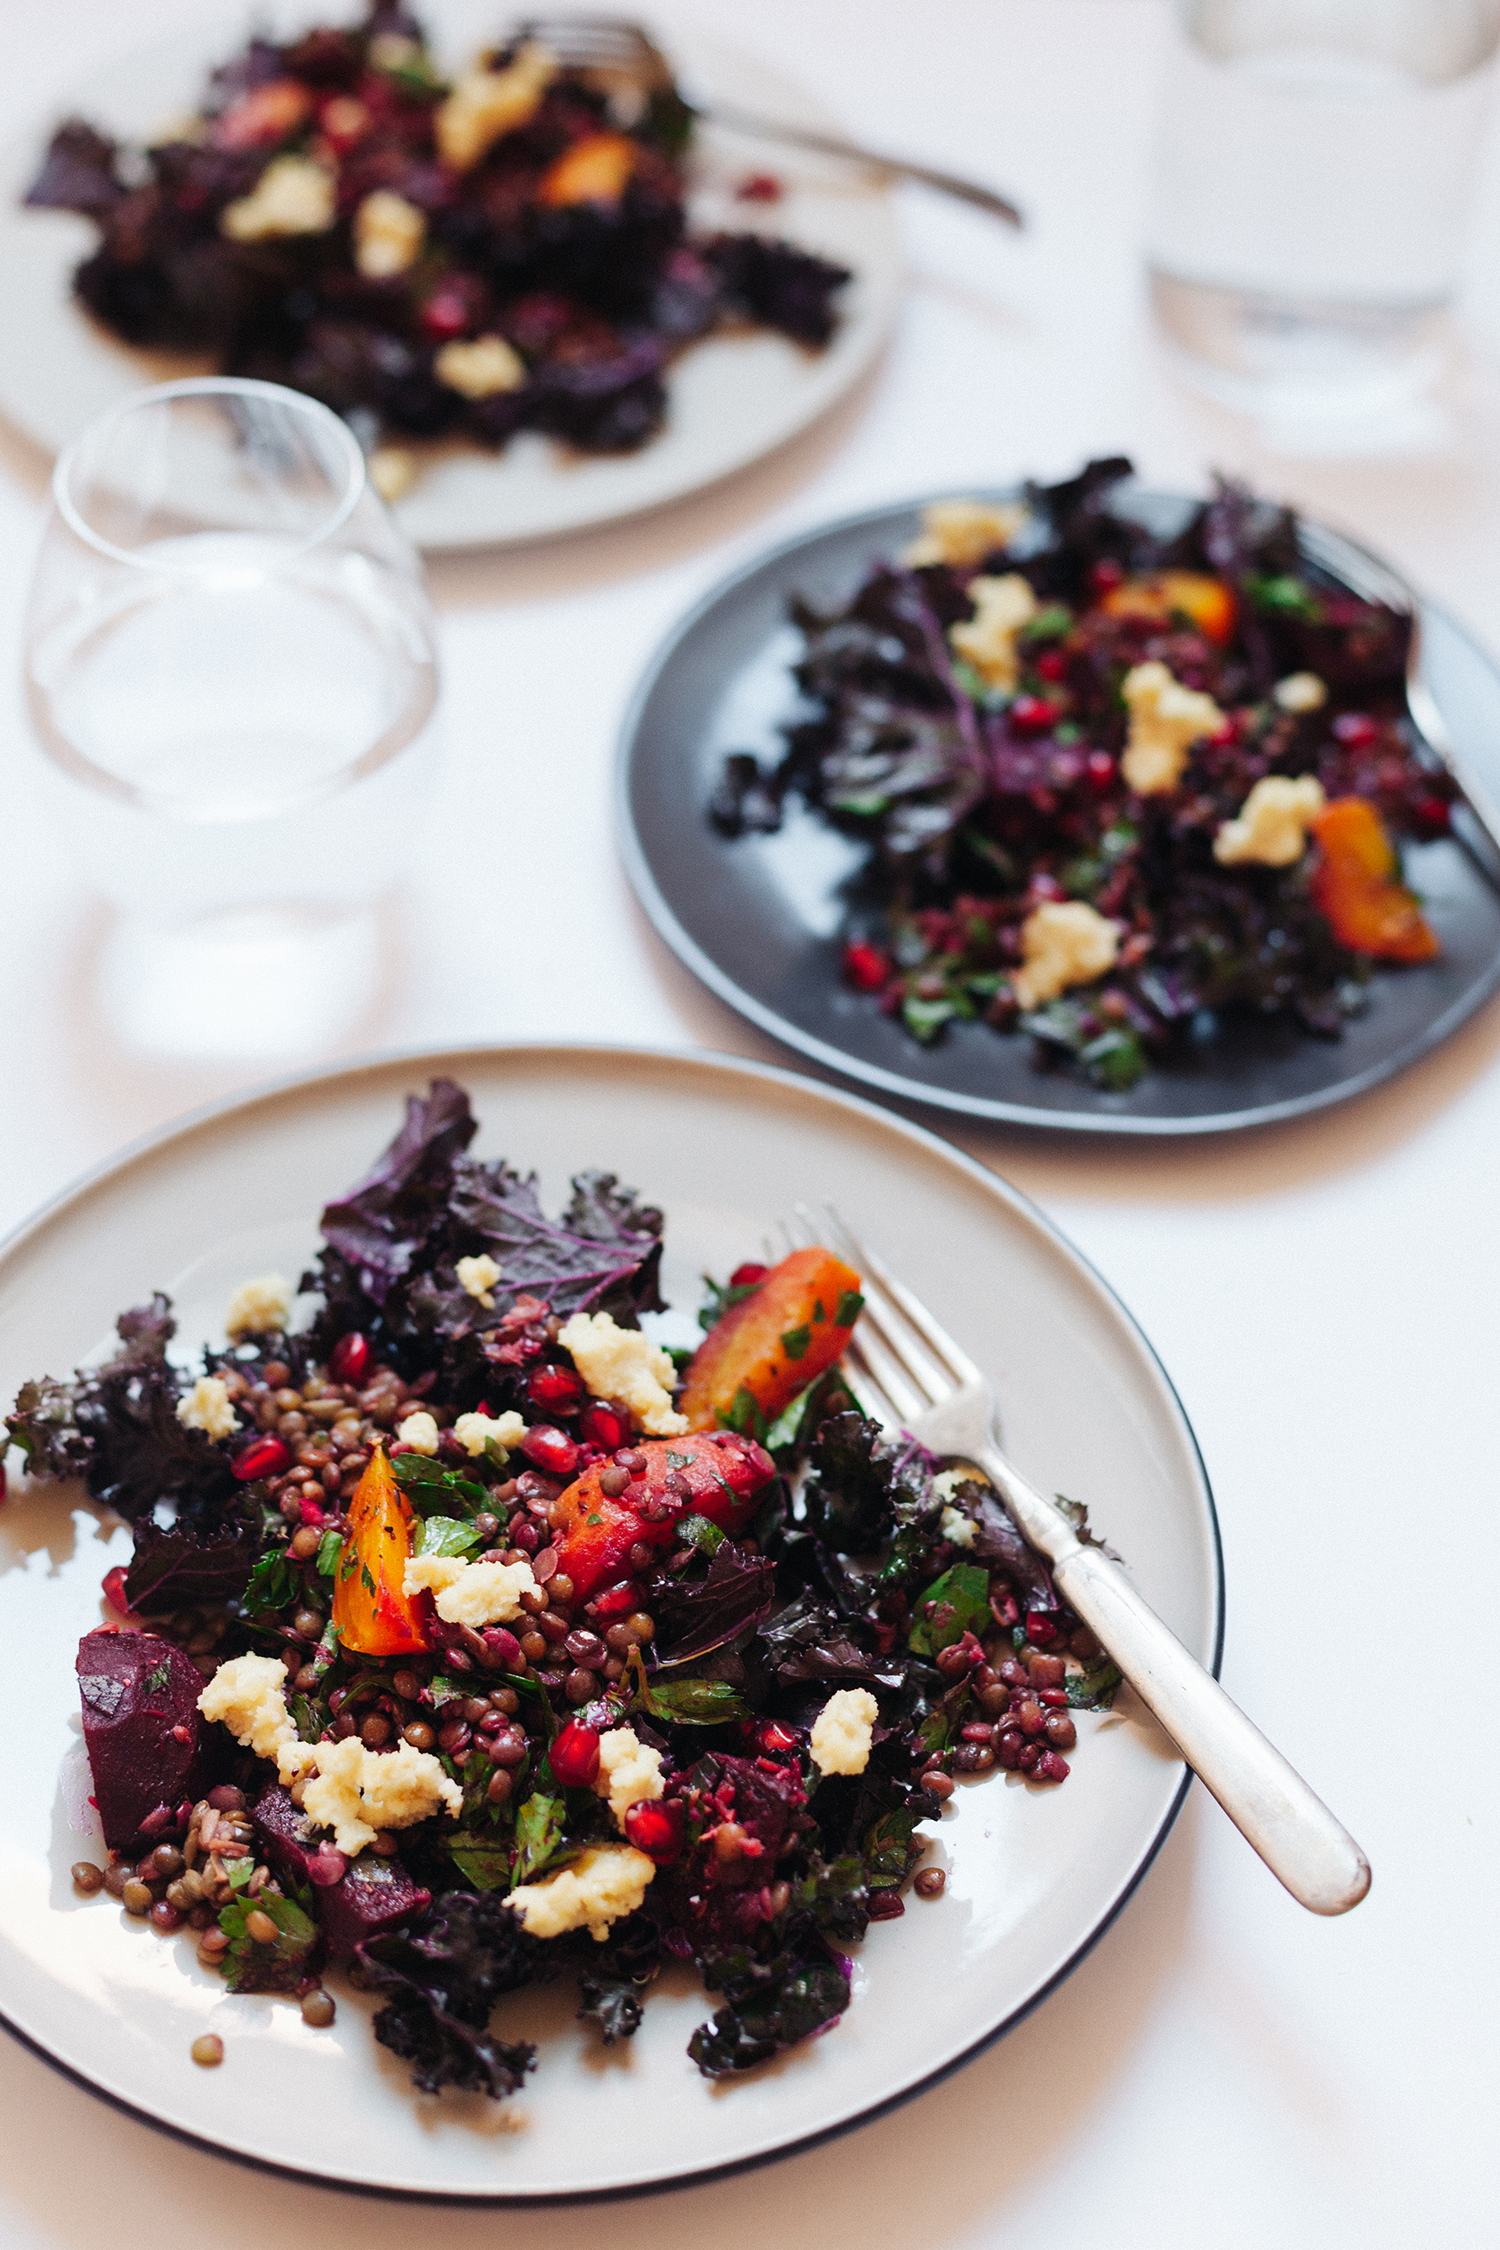 Kale Salad with Marinated Beets, Lentils and Almond Cheese | Golubka Kitchen